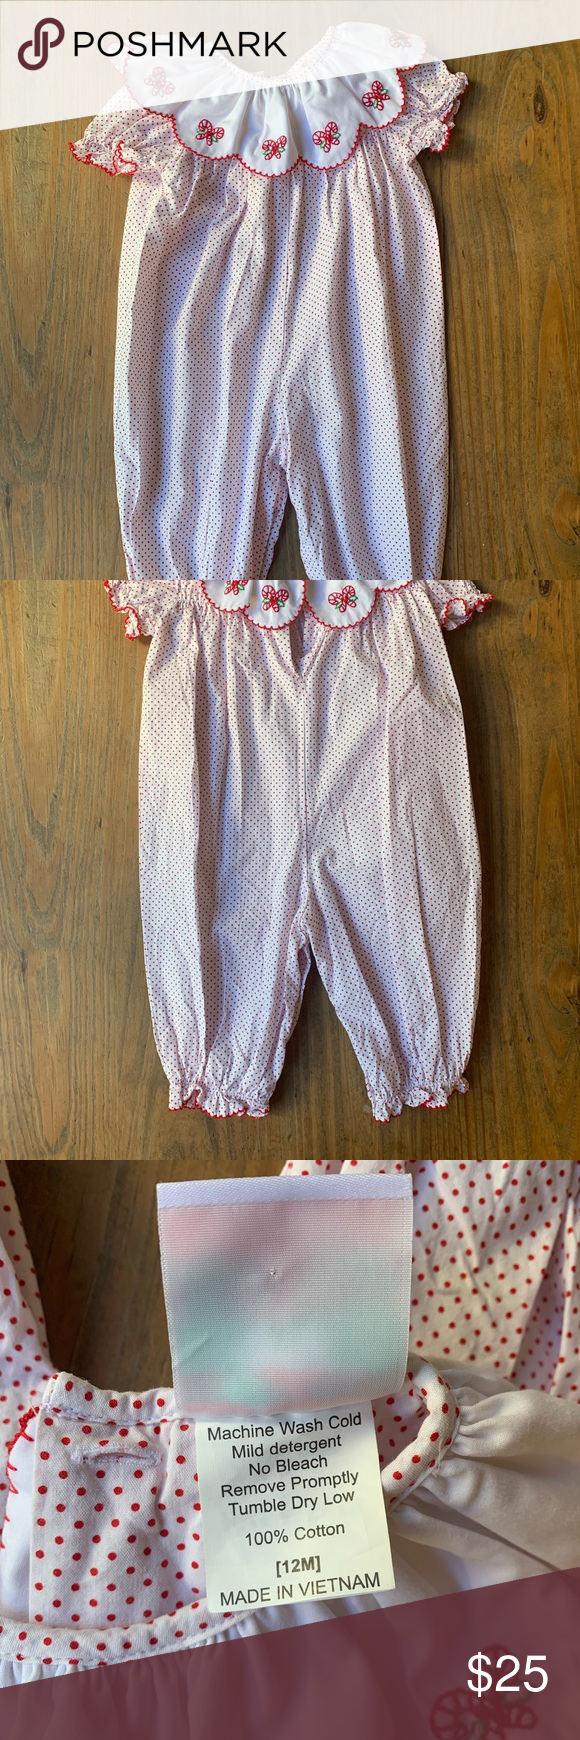 Shrimp and Grits Girls Christmas Romper Adorable 12 month Girls Christmas Romper - Fits generously. Worn and washed twice. Absolutely no stains or imperfections to fabric. One Pieces Bodysuits #shrimpandgrits Shrimp and Grits Girls Christmas Romper Adorable 12 month Girls Christmas Romper - Fits generously. Worn and washed twice. Absolutely no stains or imperfections to fabric. One Pieces Bodysuits #shrimpandgrits Shrimp and Grits Girls Christmas Romper Adorable 12 month Girls Christmas Romper - #shrimpandgrits